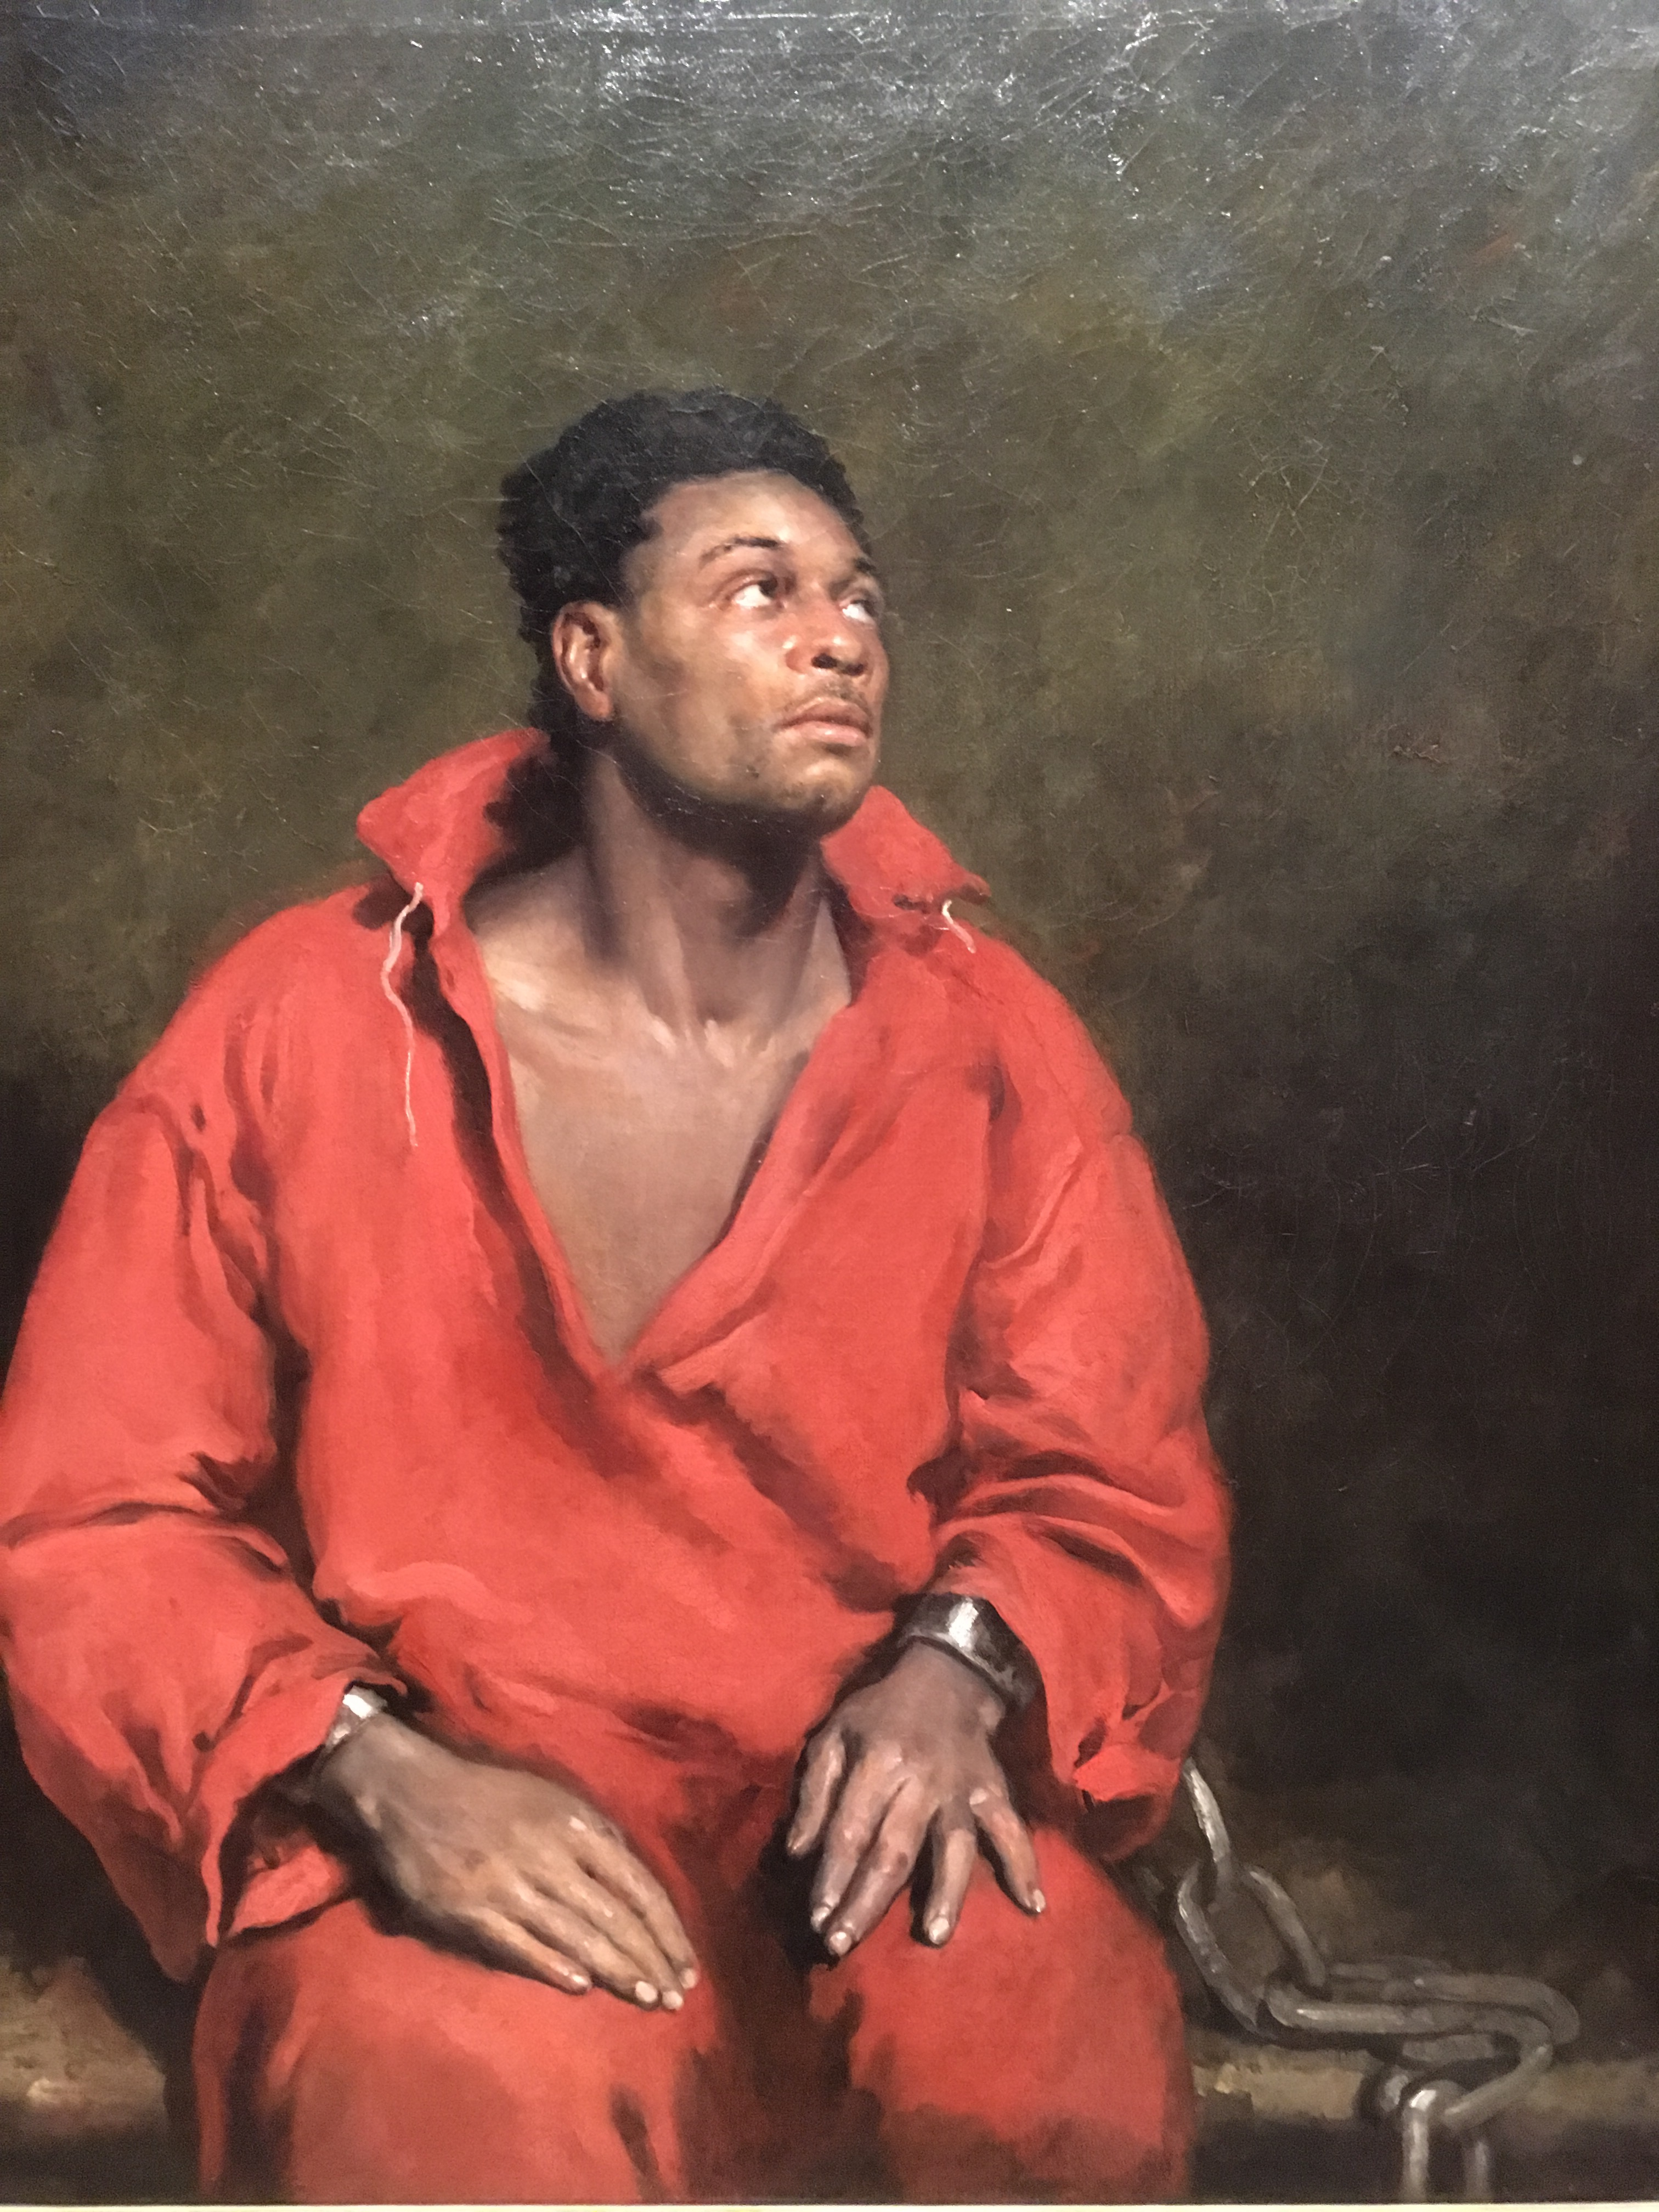 The captive slave:  A very powerful image.  Very sad expression. With almost a welling if tears in the eyes, the focus of the light informed us of his emotion. The detail in the hands is amazing—resigned.  Showing the body and dark surroundings gives us relevance.